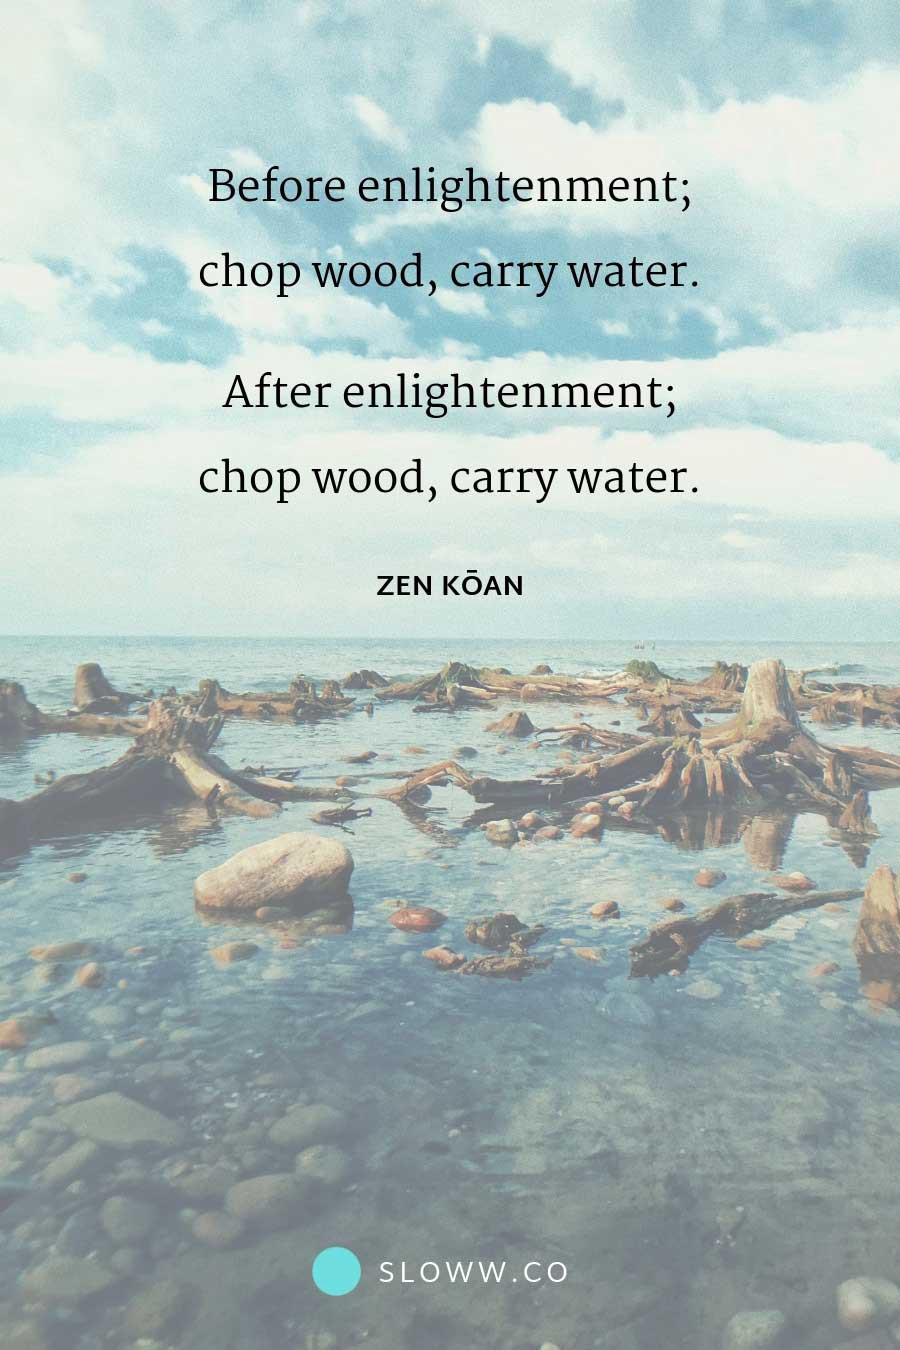 Sloww Enlightenment Chop Wood Carry Water Quote